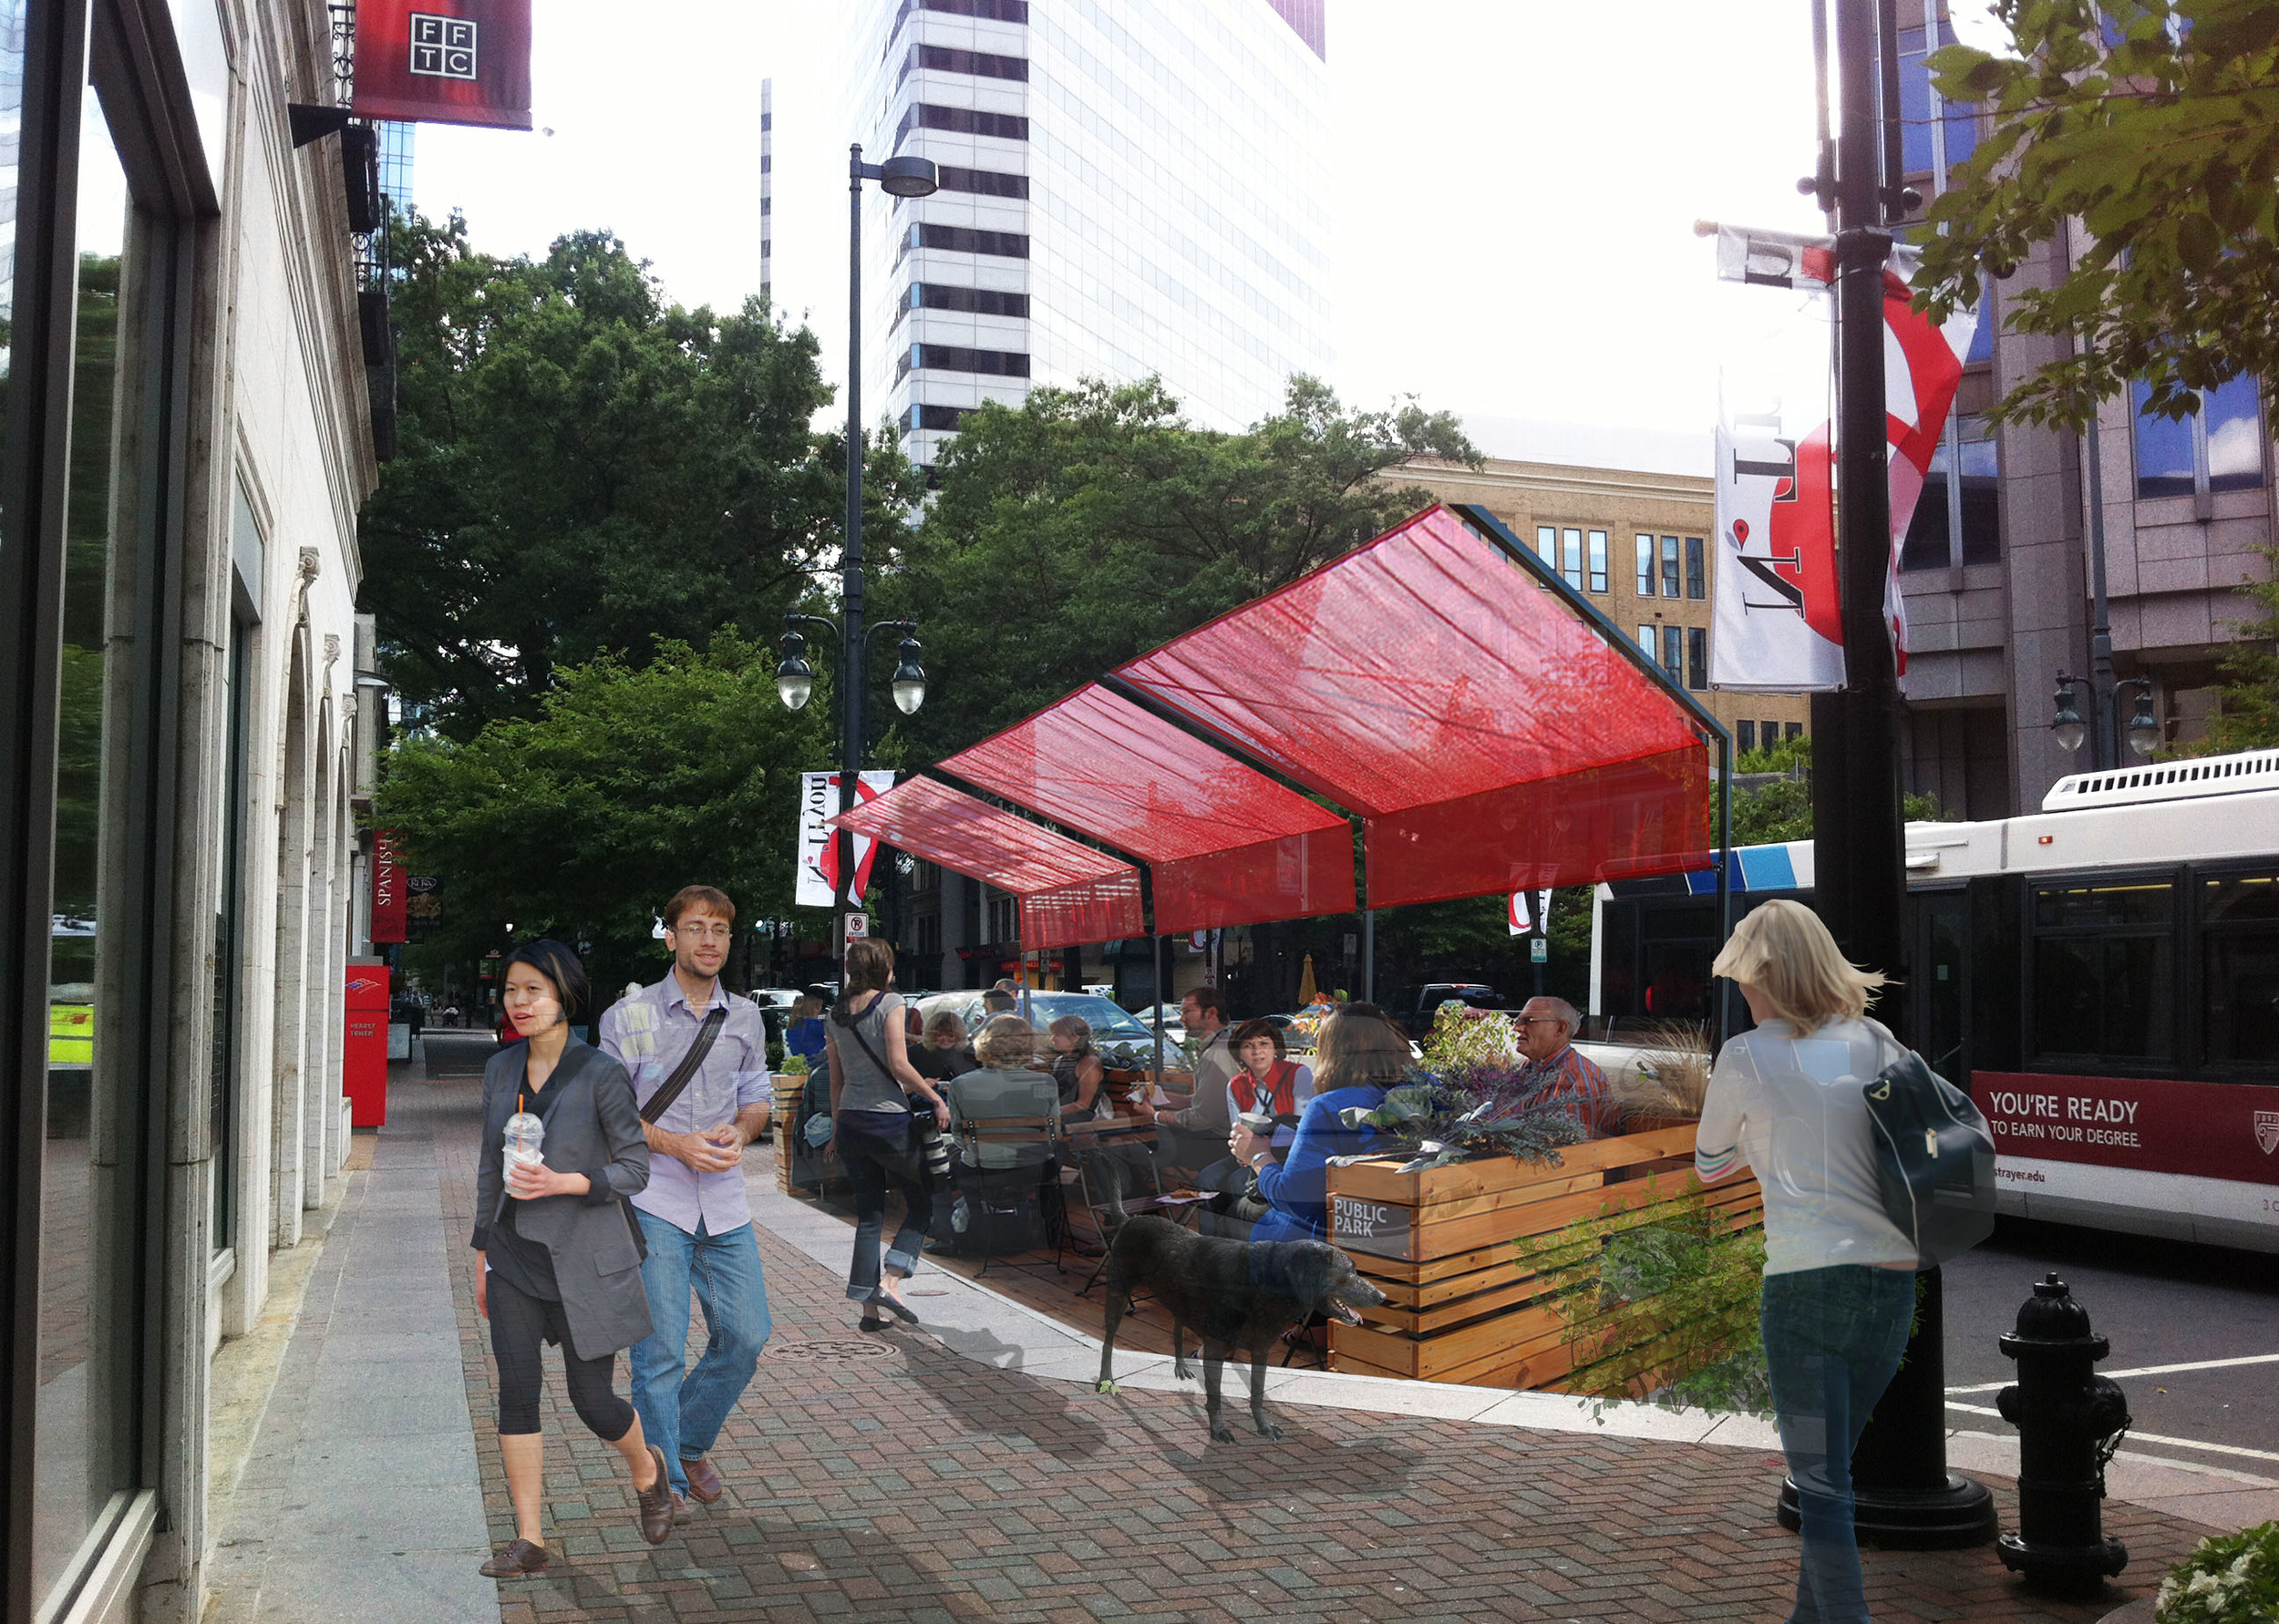 After:   Parklet Option B. This parklet includes an attractive canopy shelter, a low wall and a variety of seating options.